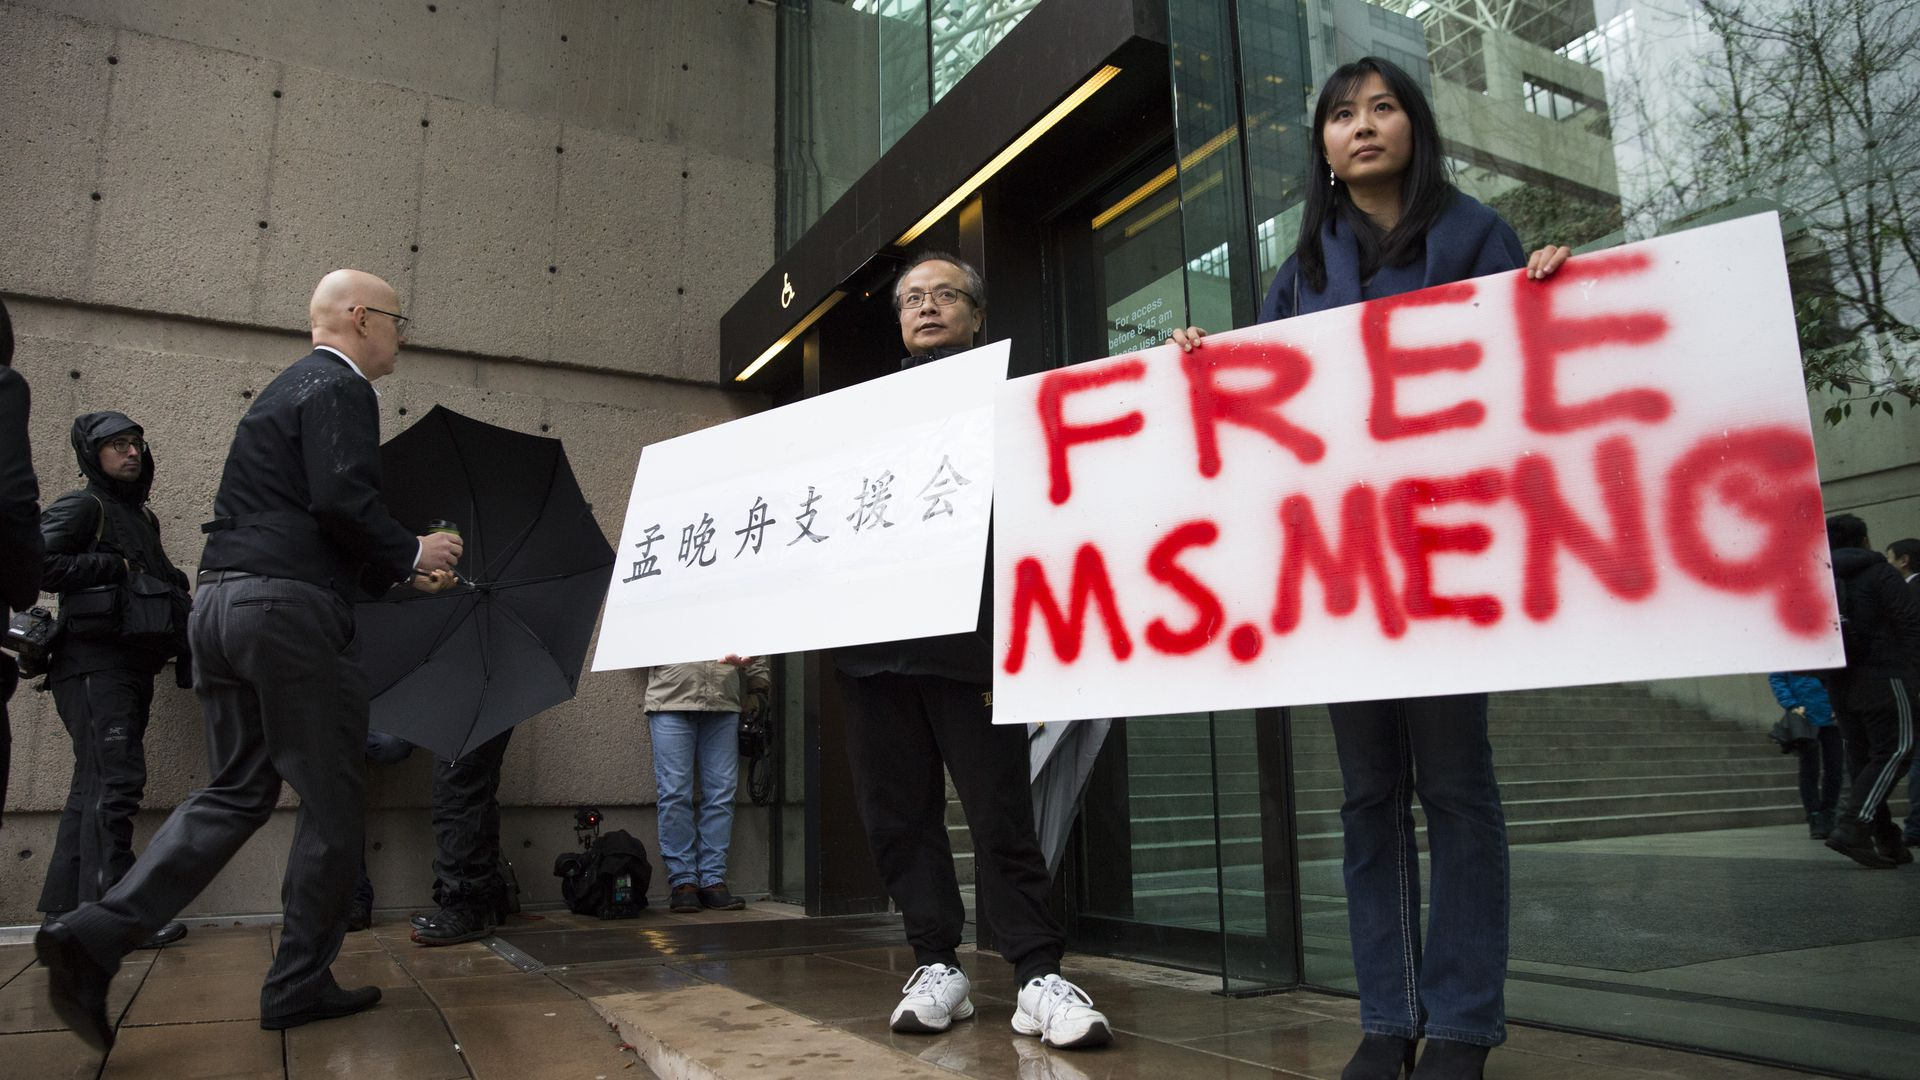 Someone with a poster that says free Ms. Meng